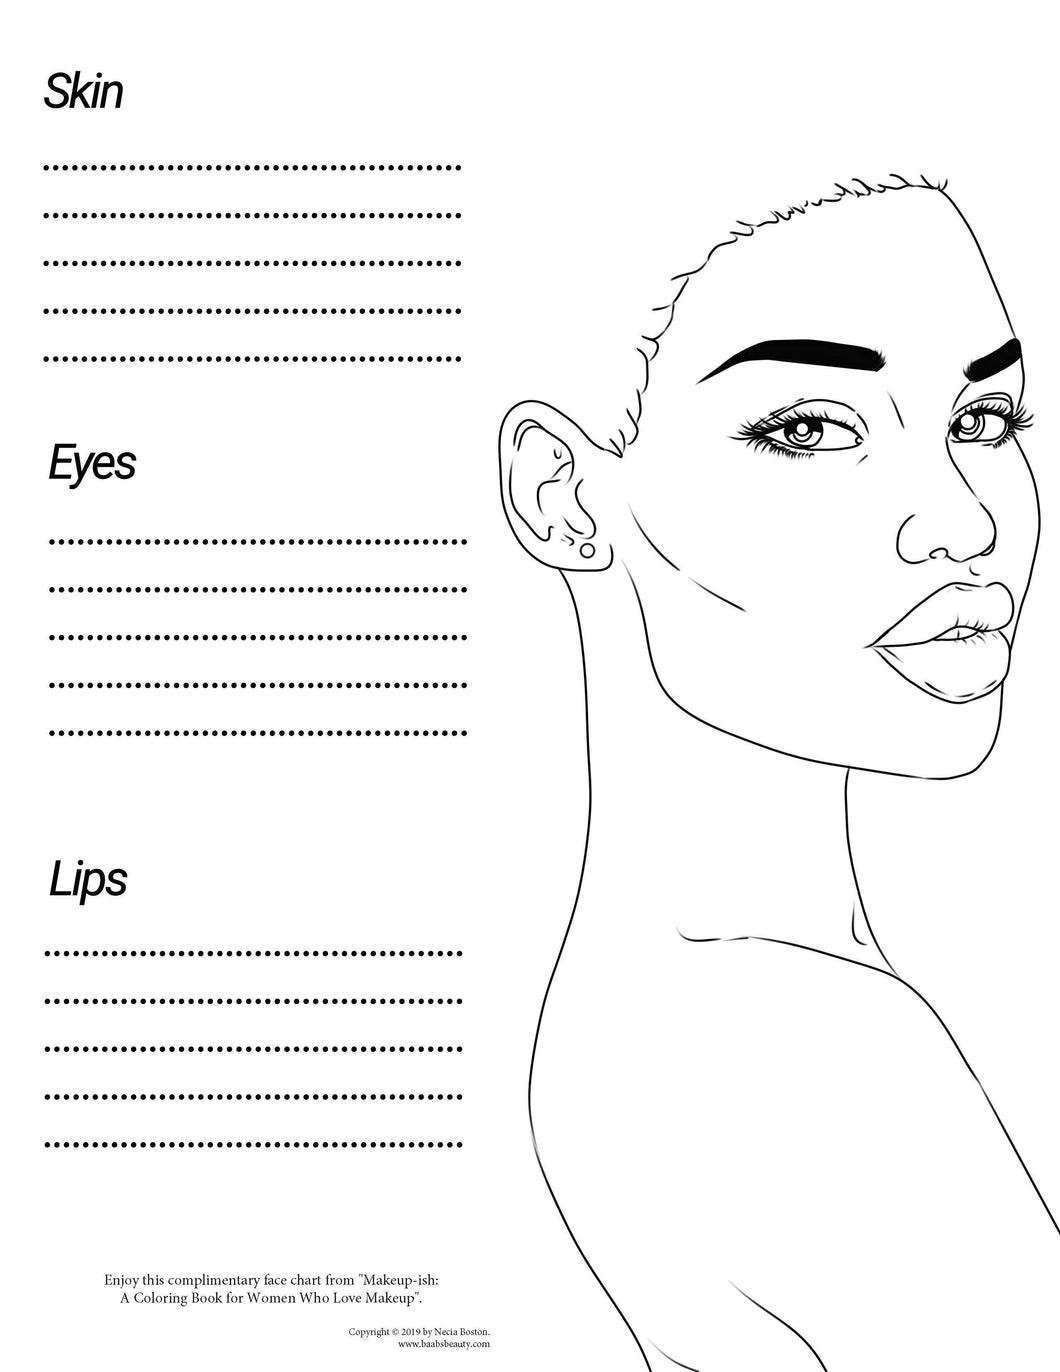 Makeup Ish Coloring Book Freebee